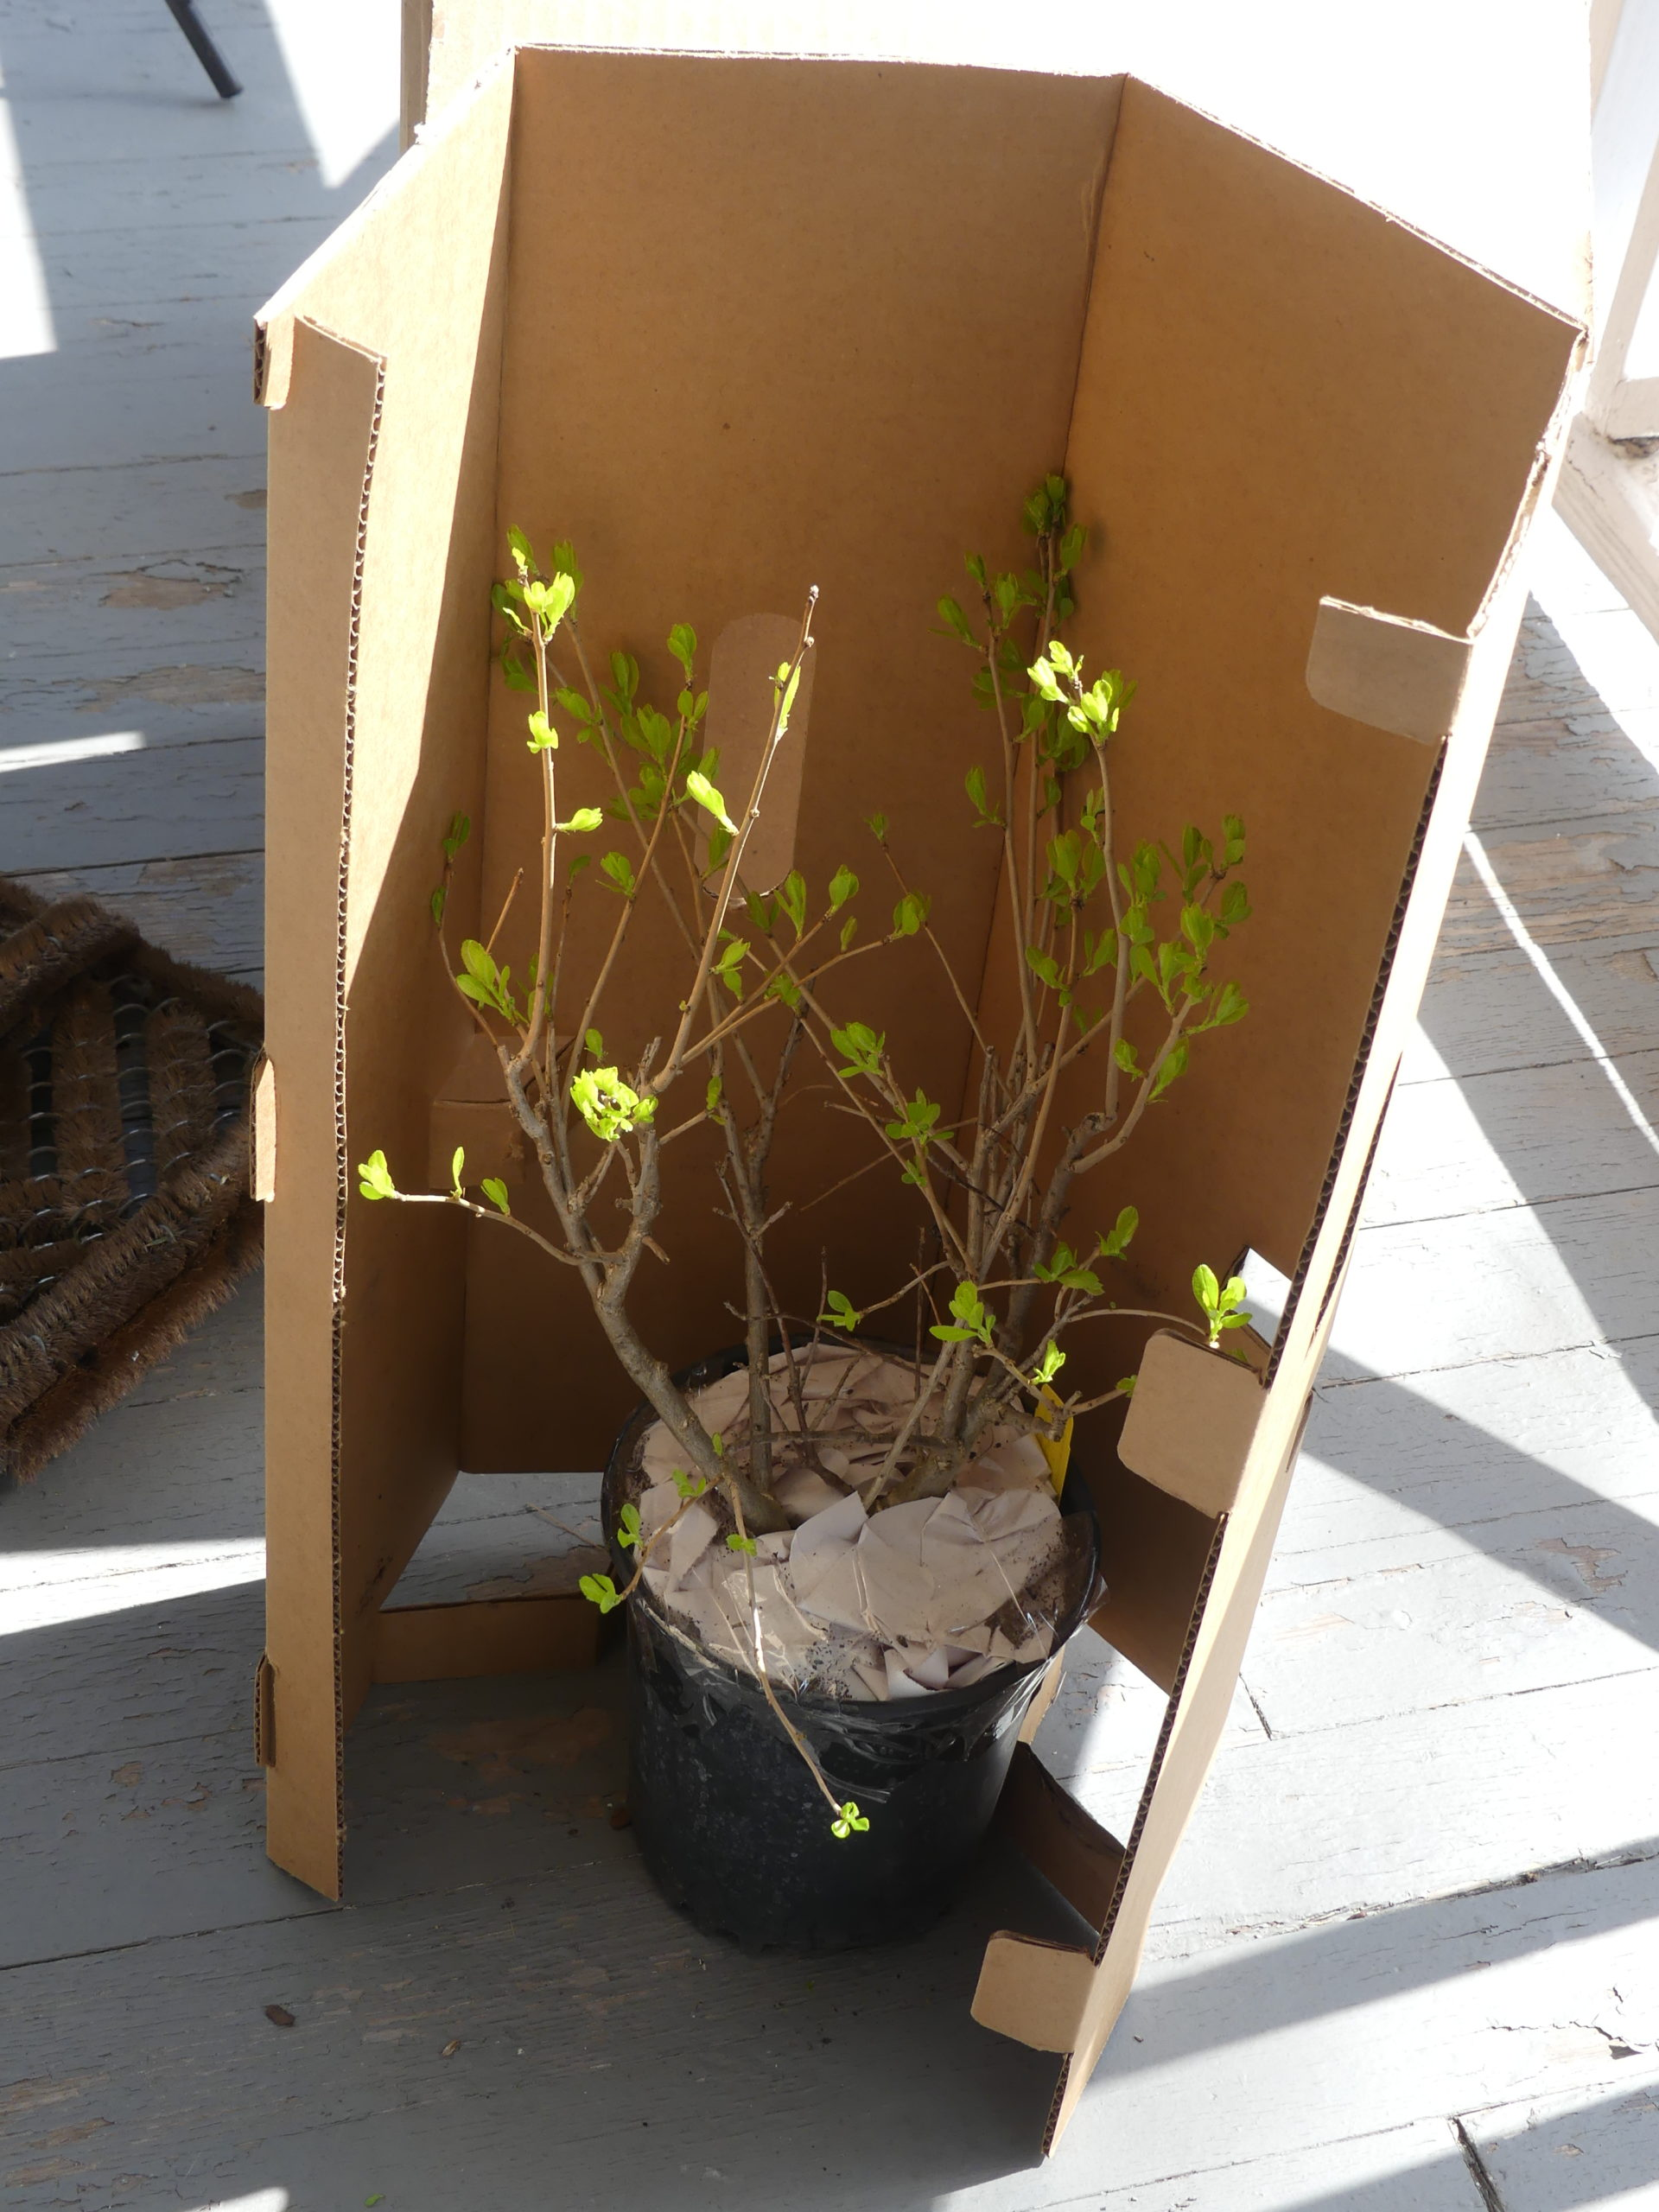 Even fairly large plants like this Ilex verticillata can be shipped by UPS and FedEx. (UPS is always my choice.) This plant is in a 1.5-gallon pot and was about 2 feet tall.  It gets put in a protective cardboard sleeve, seen here, then it goes into an outer shipping box.  Paper put on top of the soil then taped to the pot edge prevents soil loss during shipping.